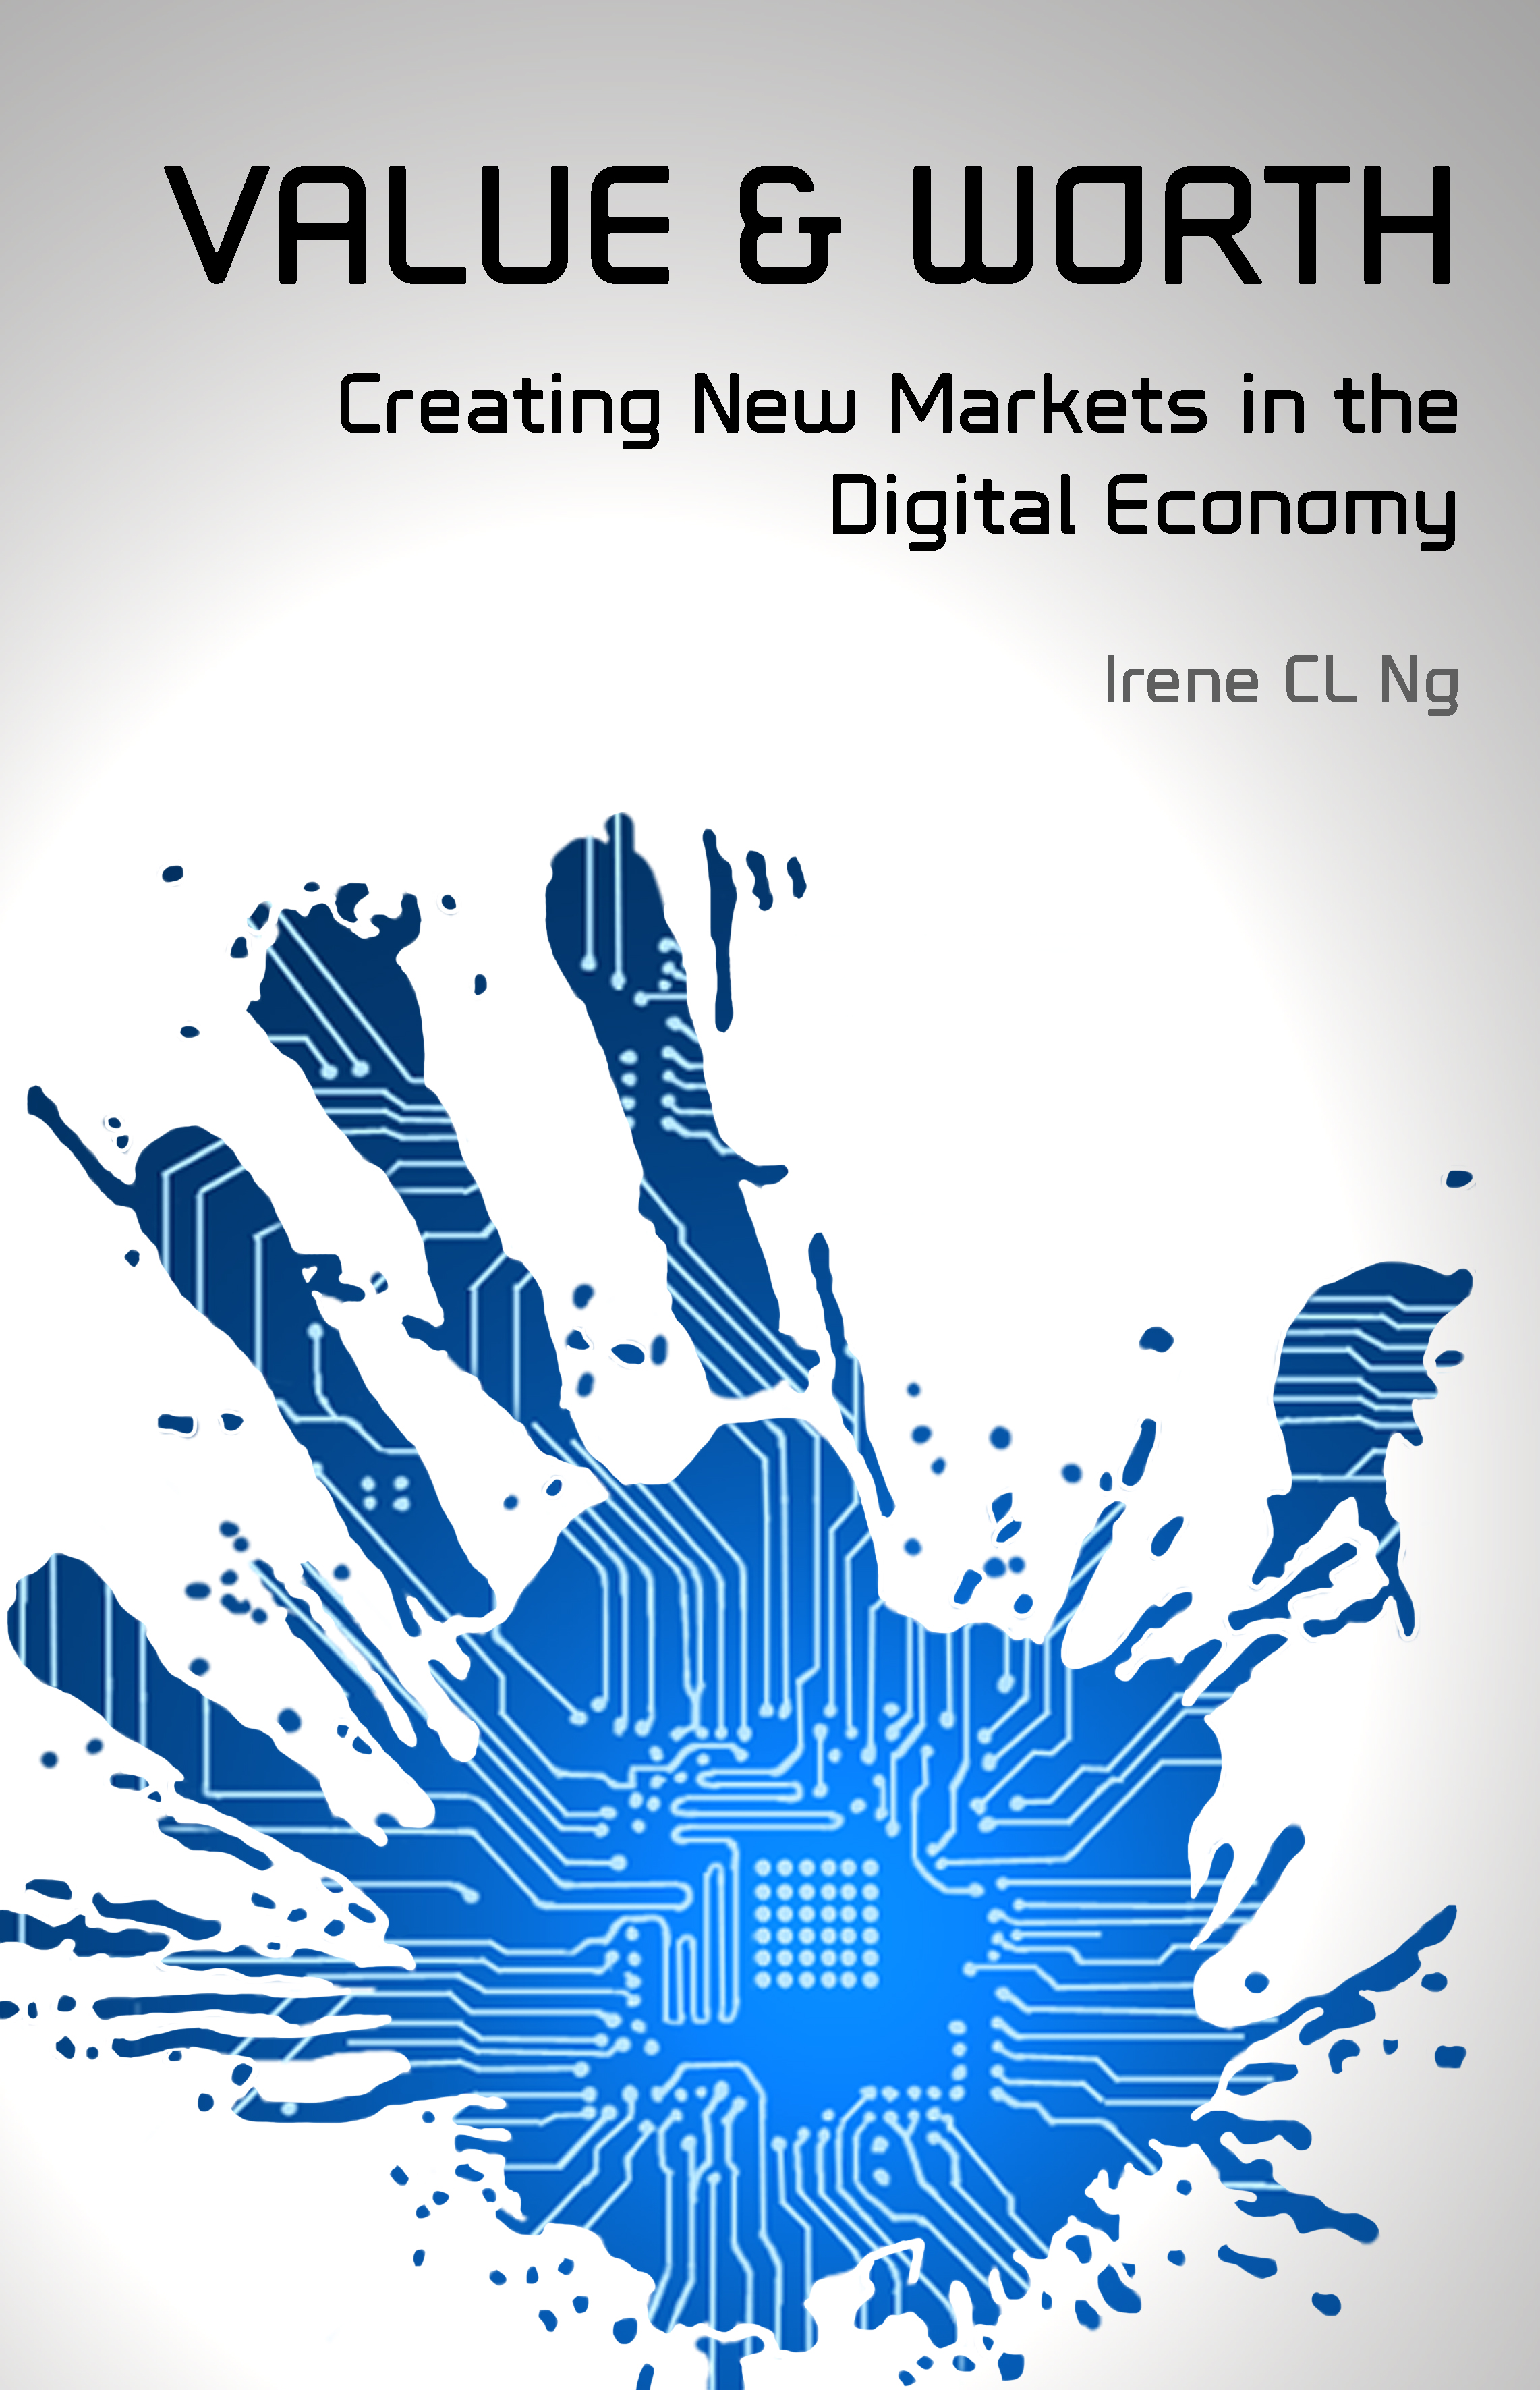 book-cover-official.jpg